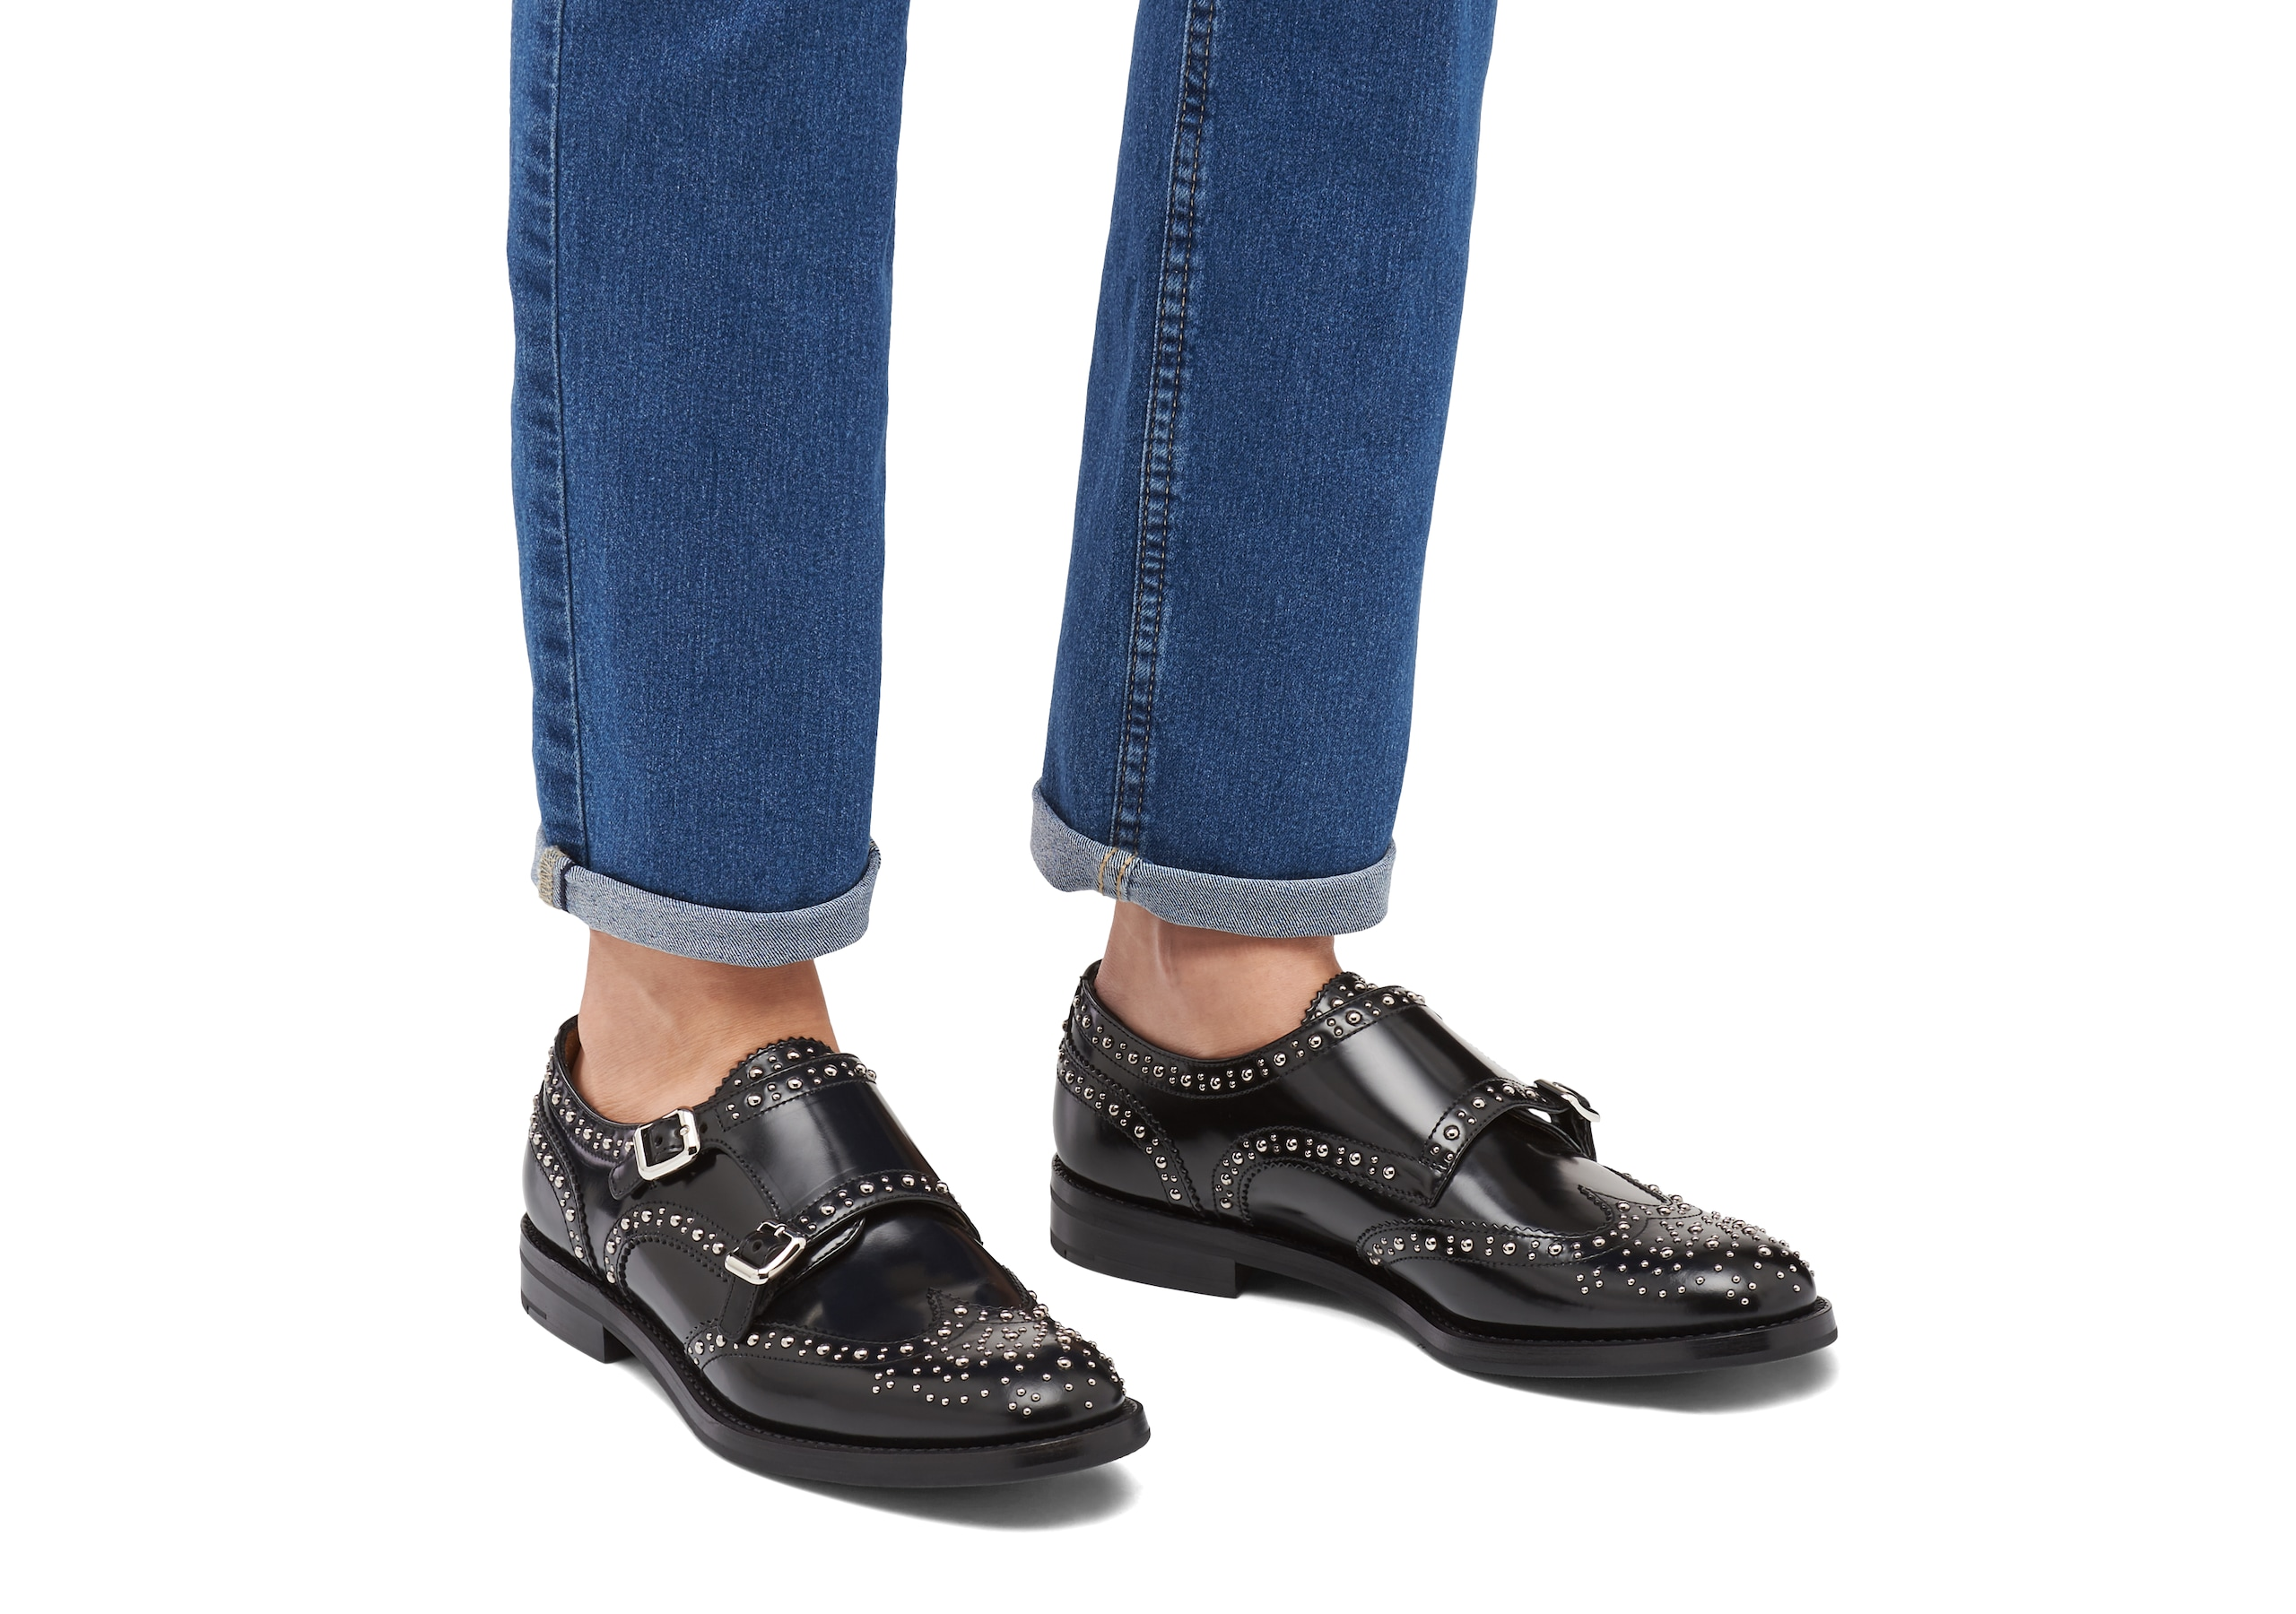 Lana met Church's Polished Binder Monk Brogue  Stud Black